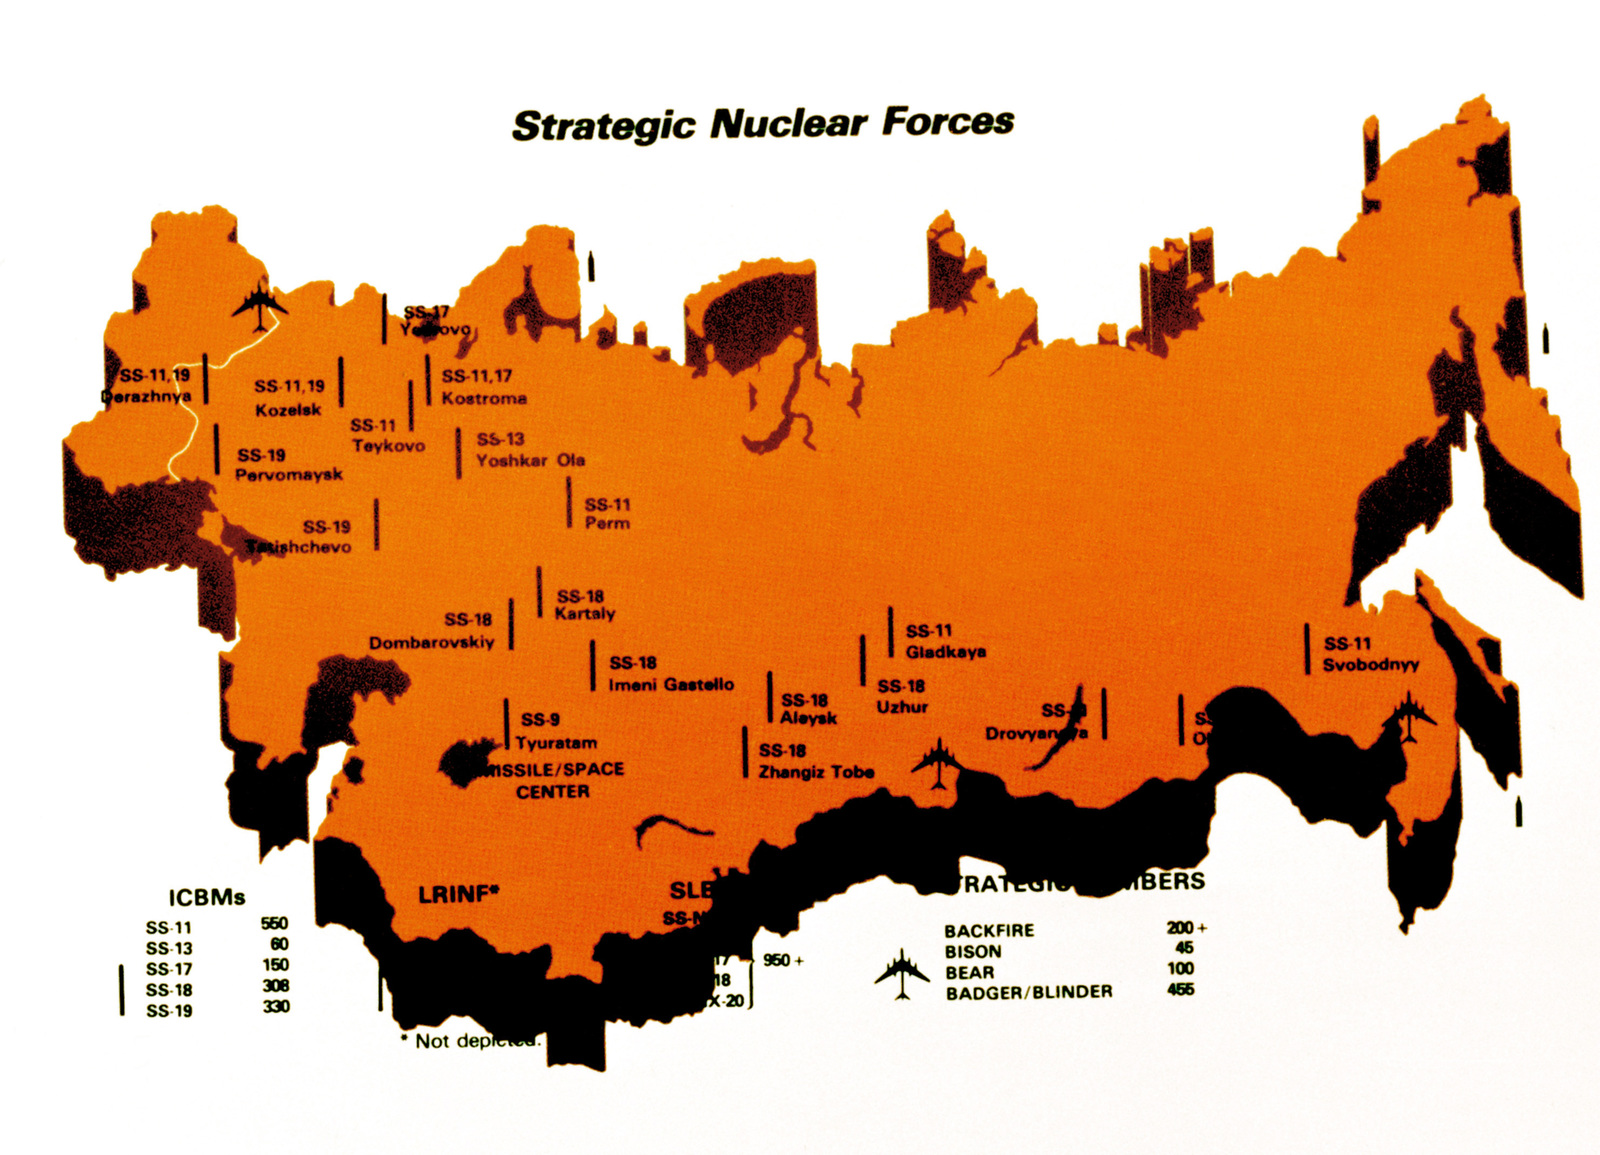 Outline of the Soviet Union showing strategic nuclear forces